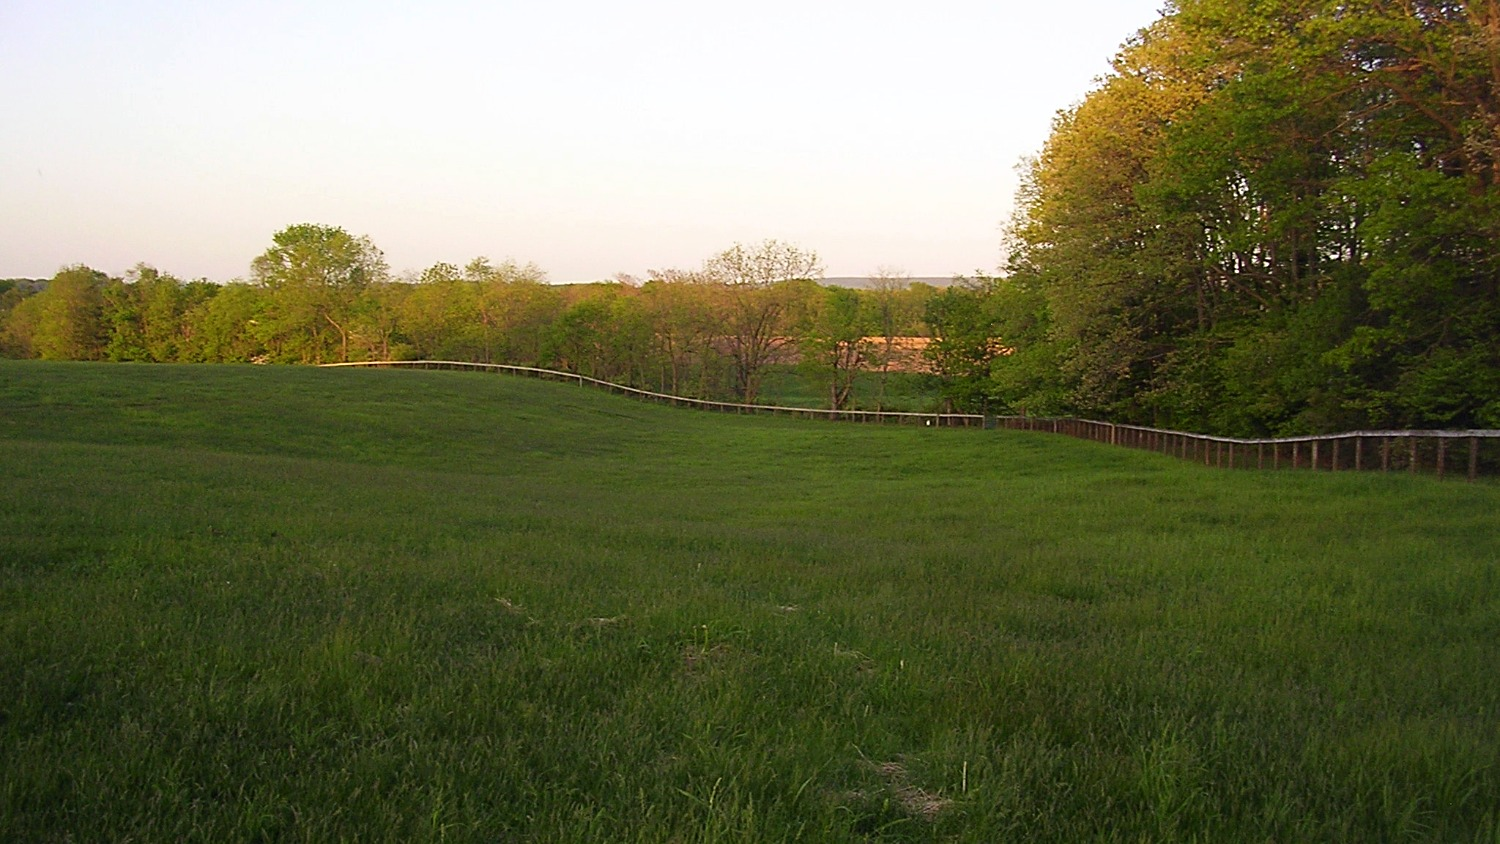 Upper pasture fenced in Keepsafe Diamond Mesh Fence